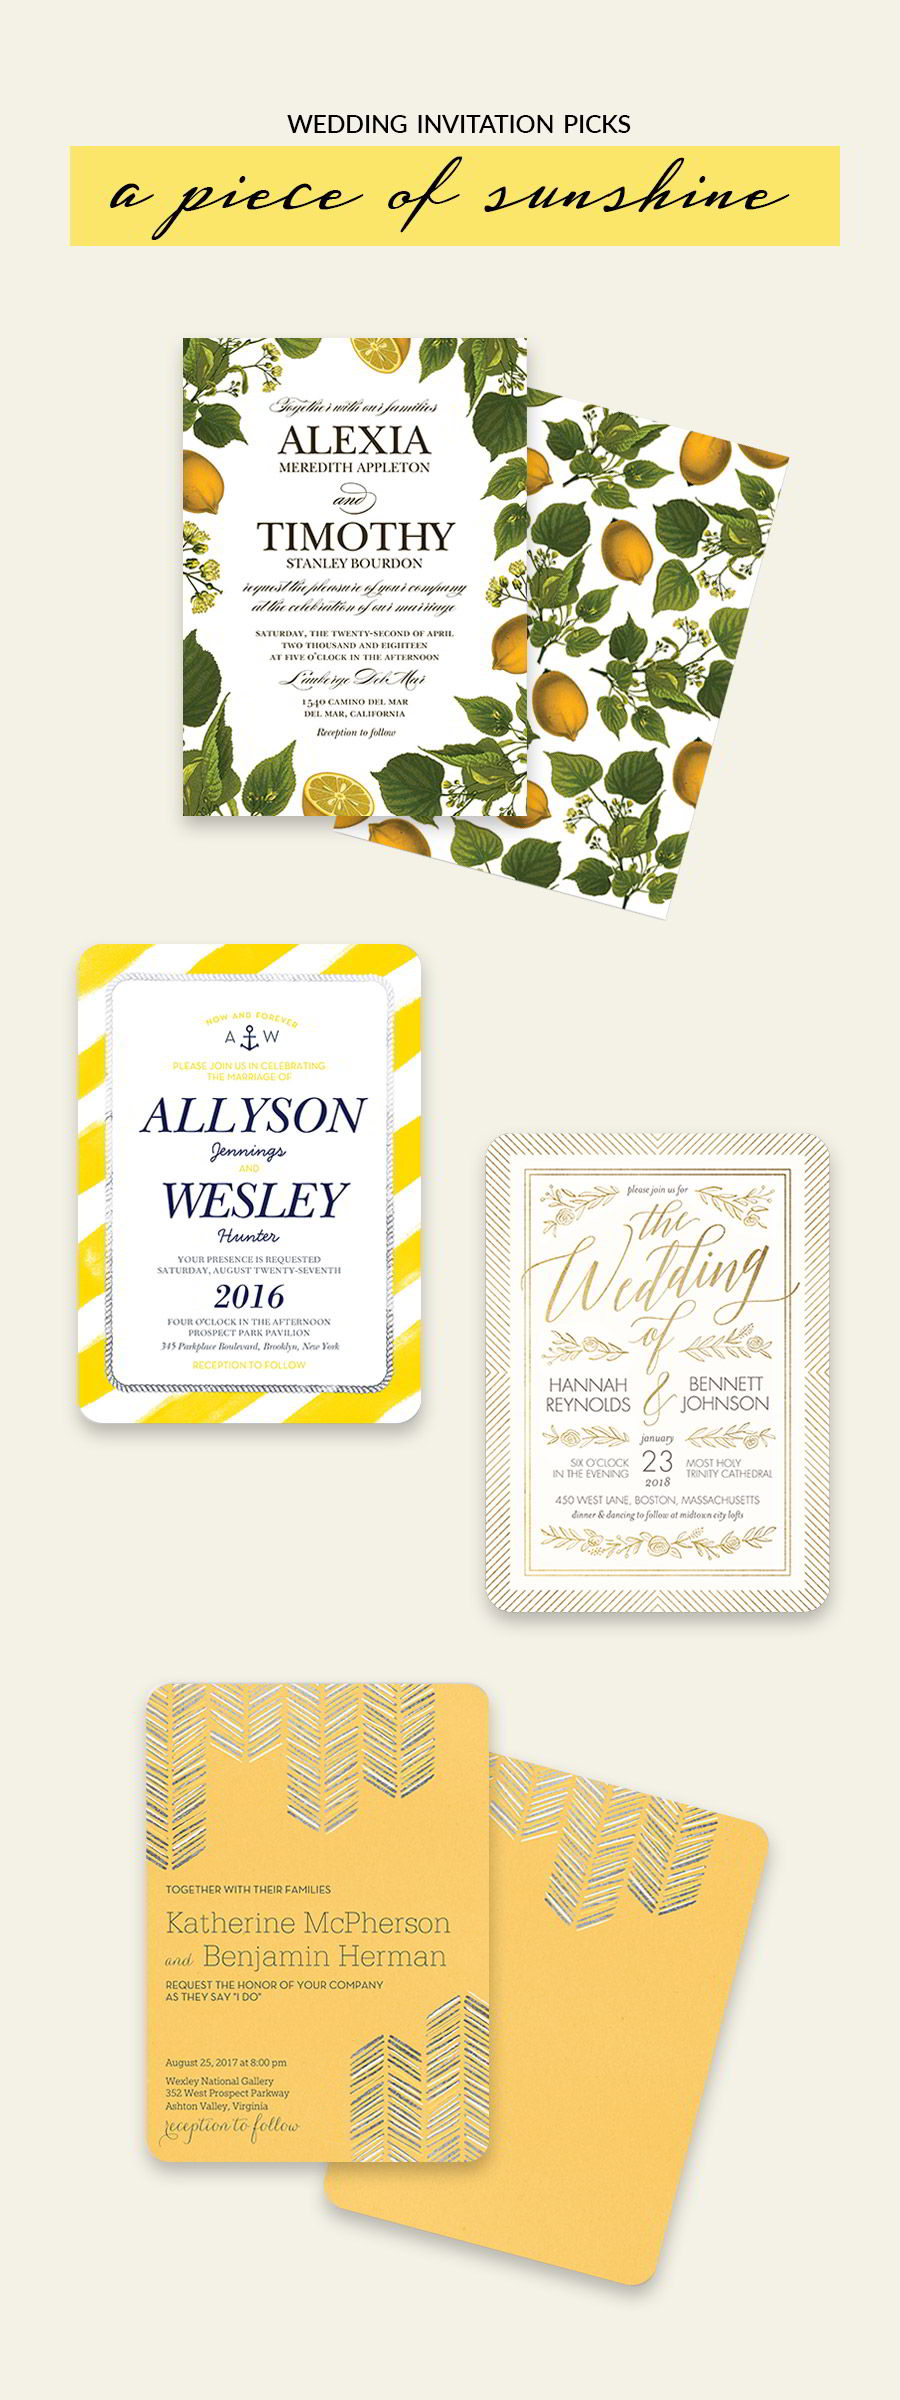 shutterfly bridal stationery yellow bright botanical wedding invitation cards color inspiration